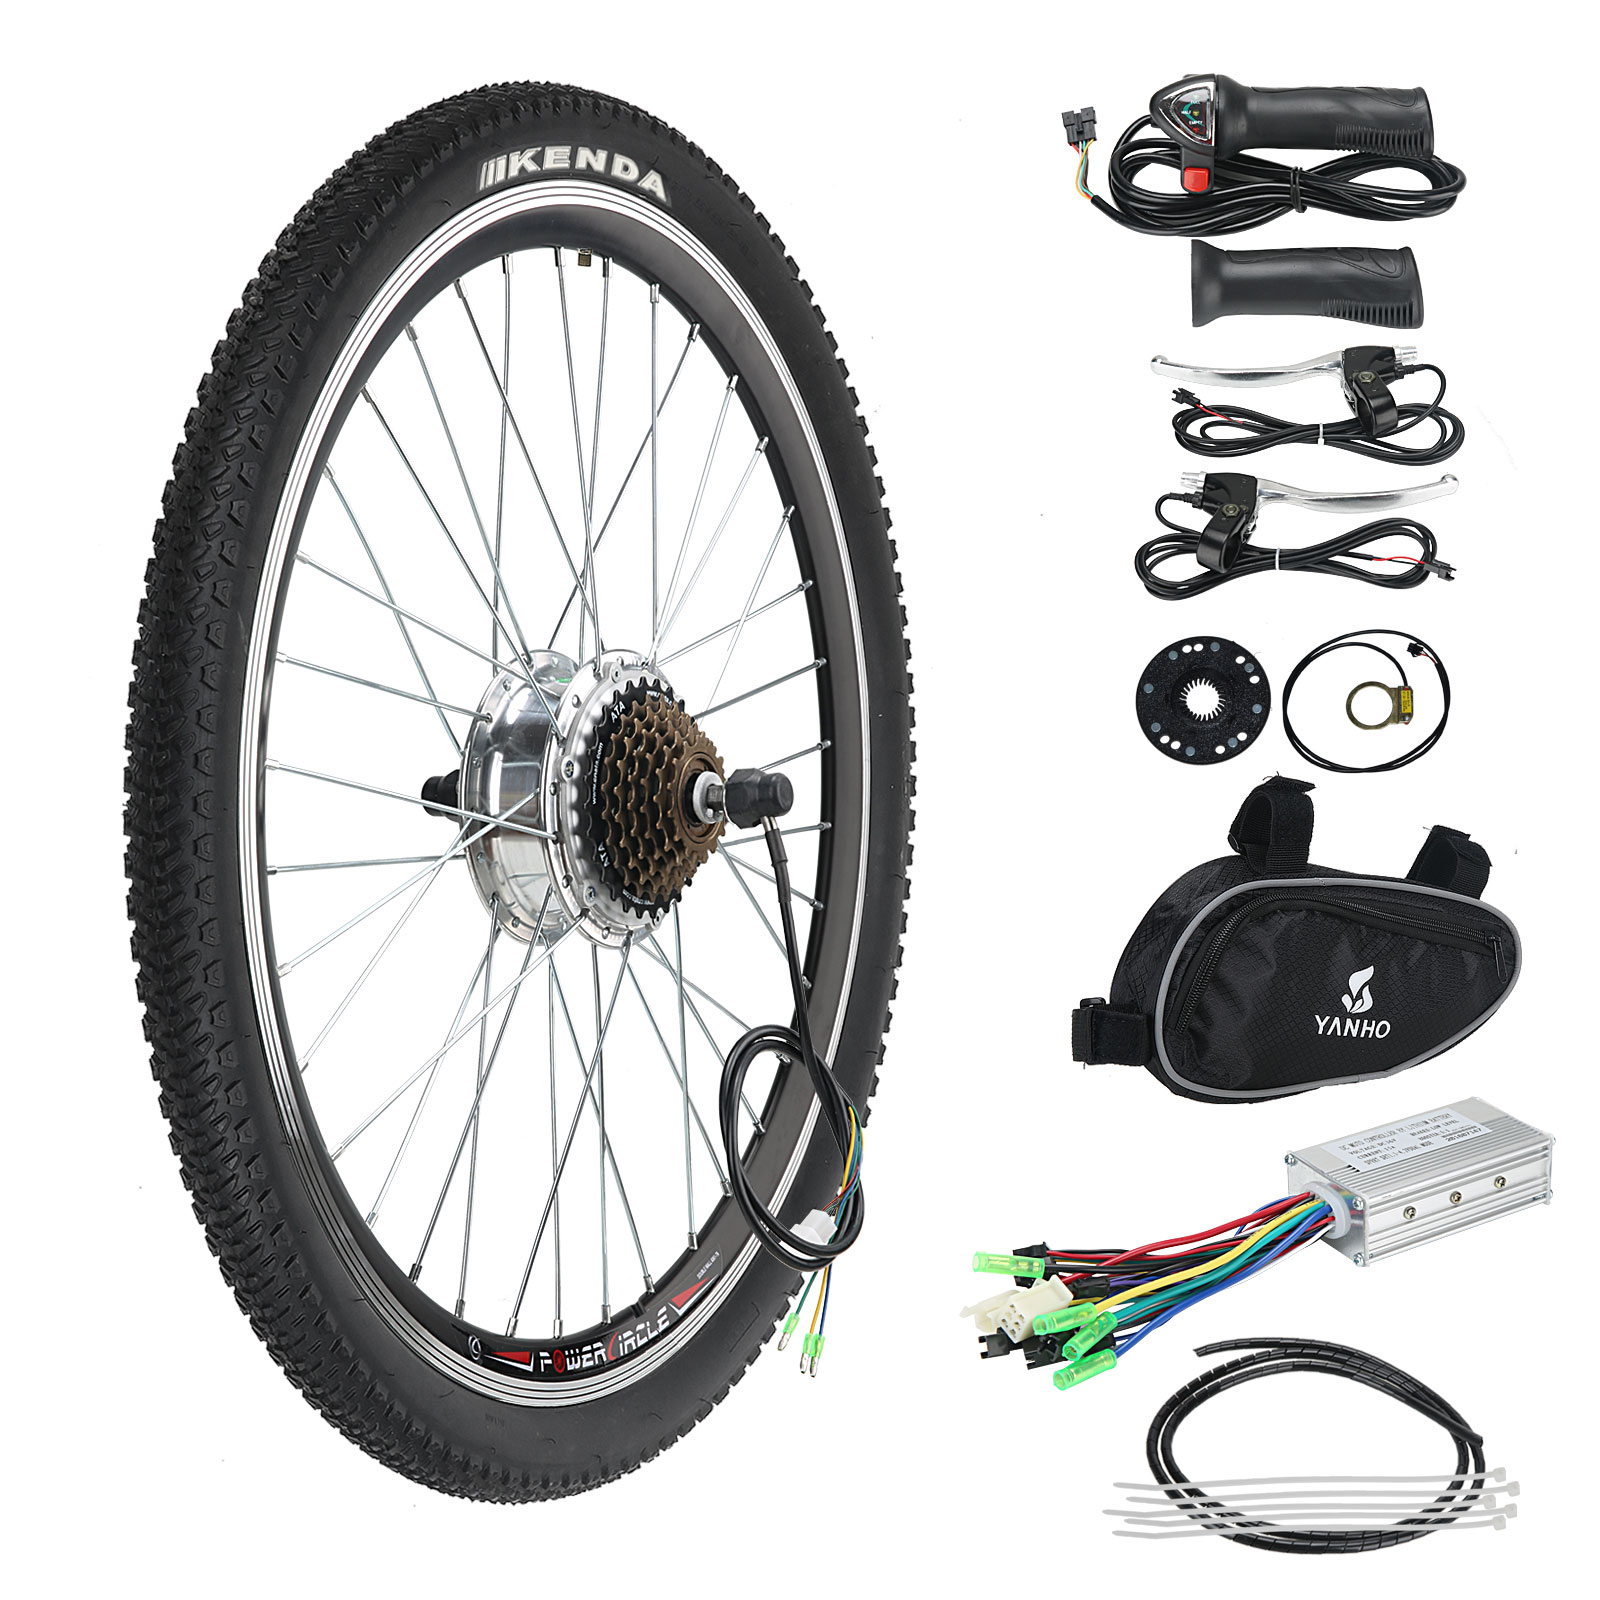 36v 250w e bike conversion kit elektro fahrrad umbausatz. Black Bedroom Furniture Sets. Home Design Ideas